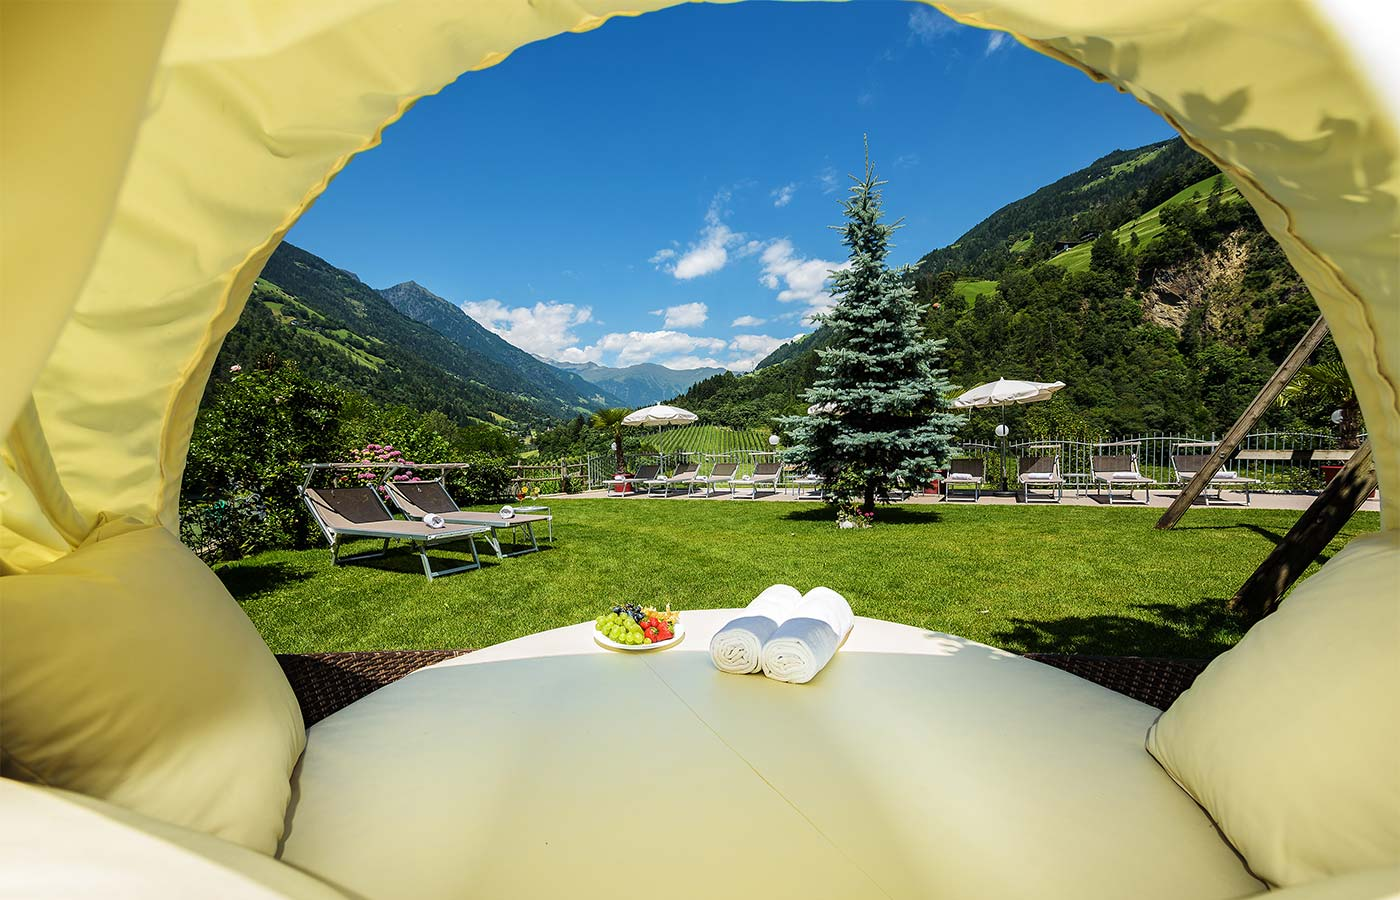 Relaxing moment in the green meadows of the Hotel Alpenhof